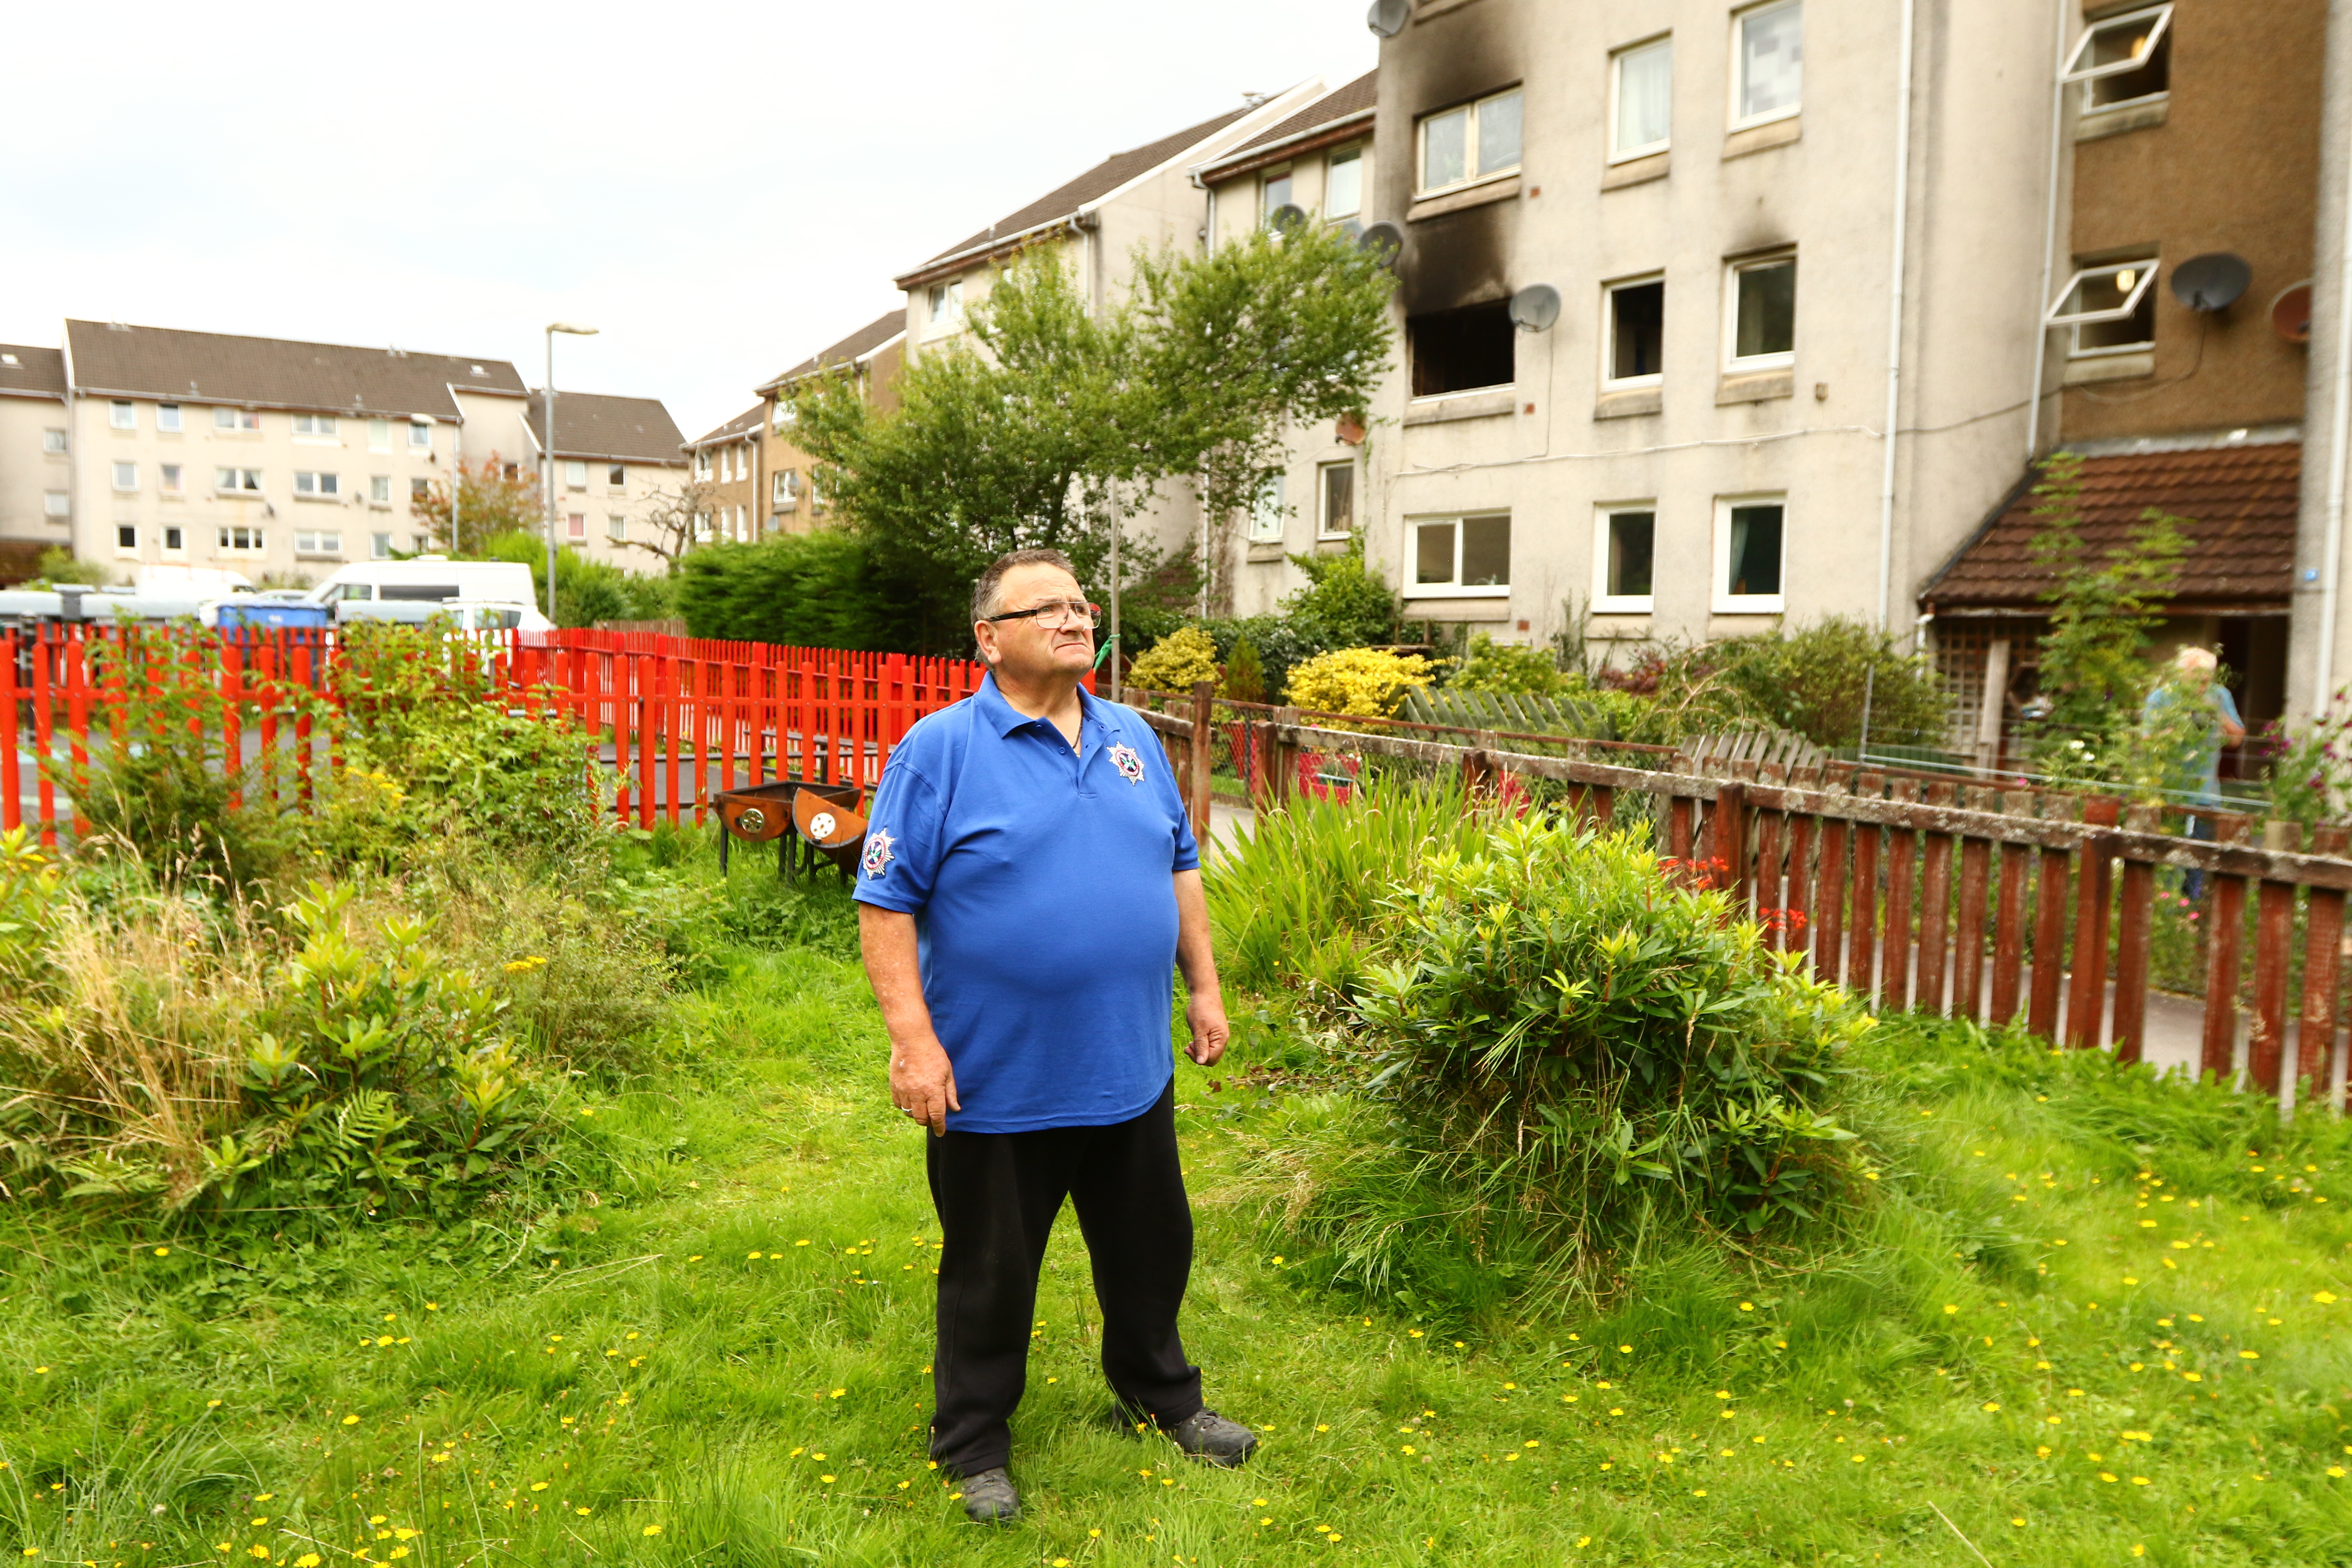 George Berry on the waste ground where he wants argyll and bute council to convert in to an area for emergency services to attend and deal with incidents which could save lives picture kevin mcglynn